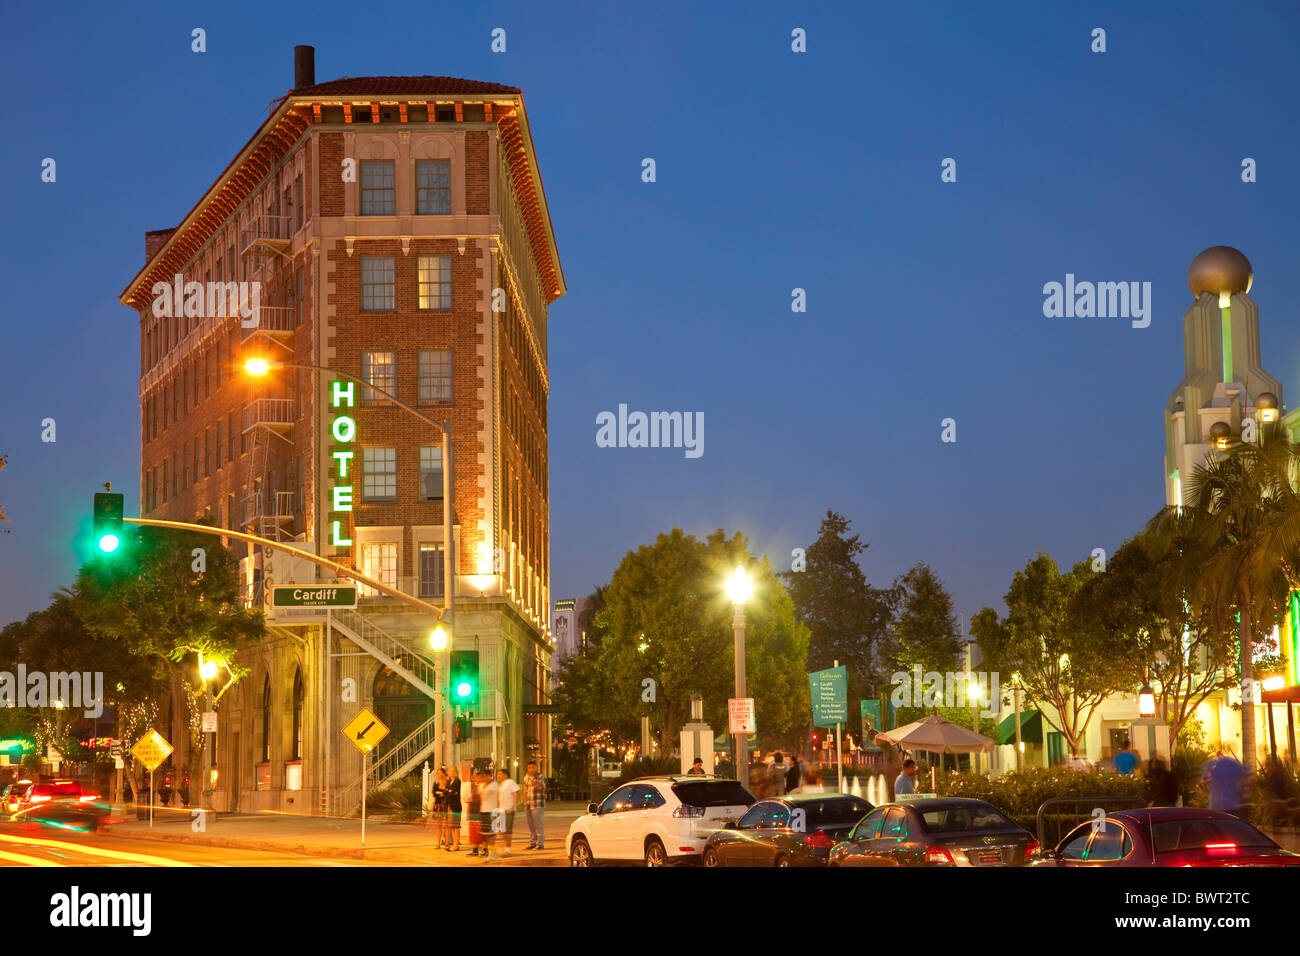 Downtown Culver City Hotel